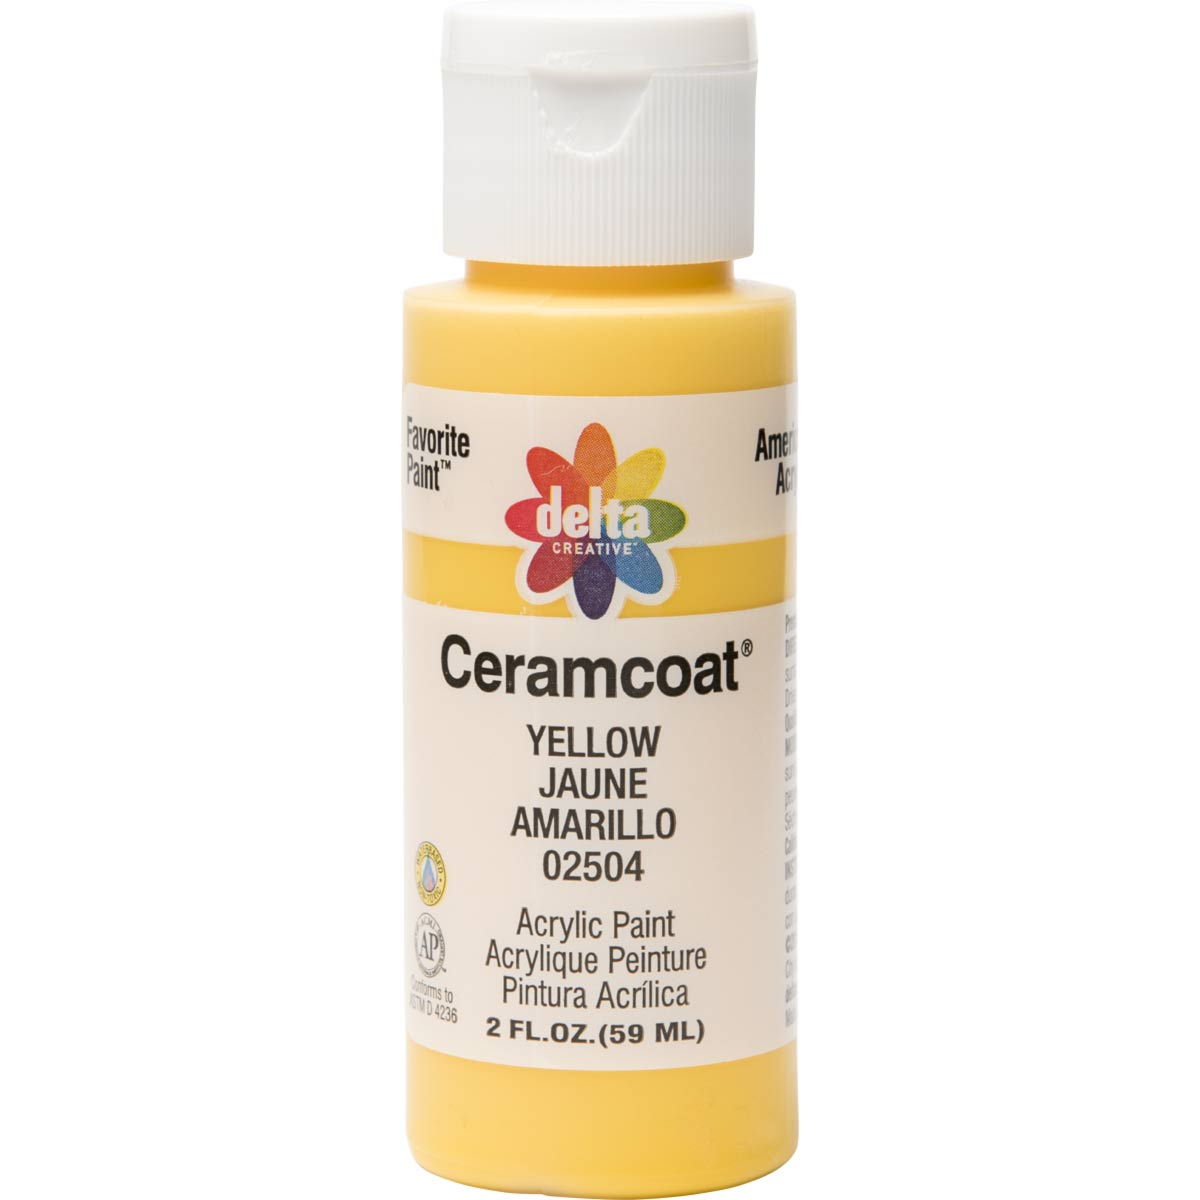 Delta Ceramcoat ® Acrylic Paint - Yellow, 2 oz. - 025040202W